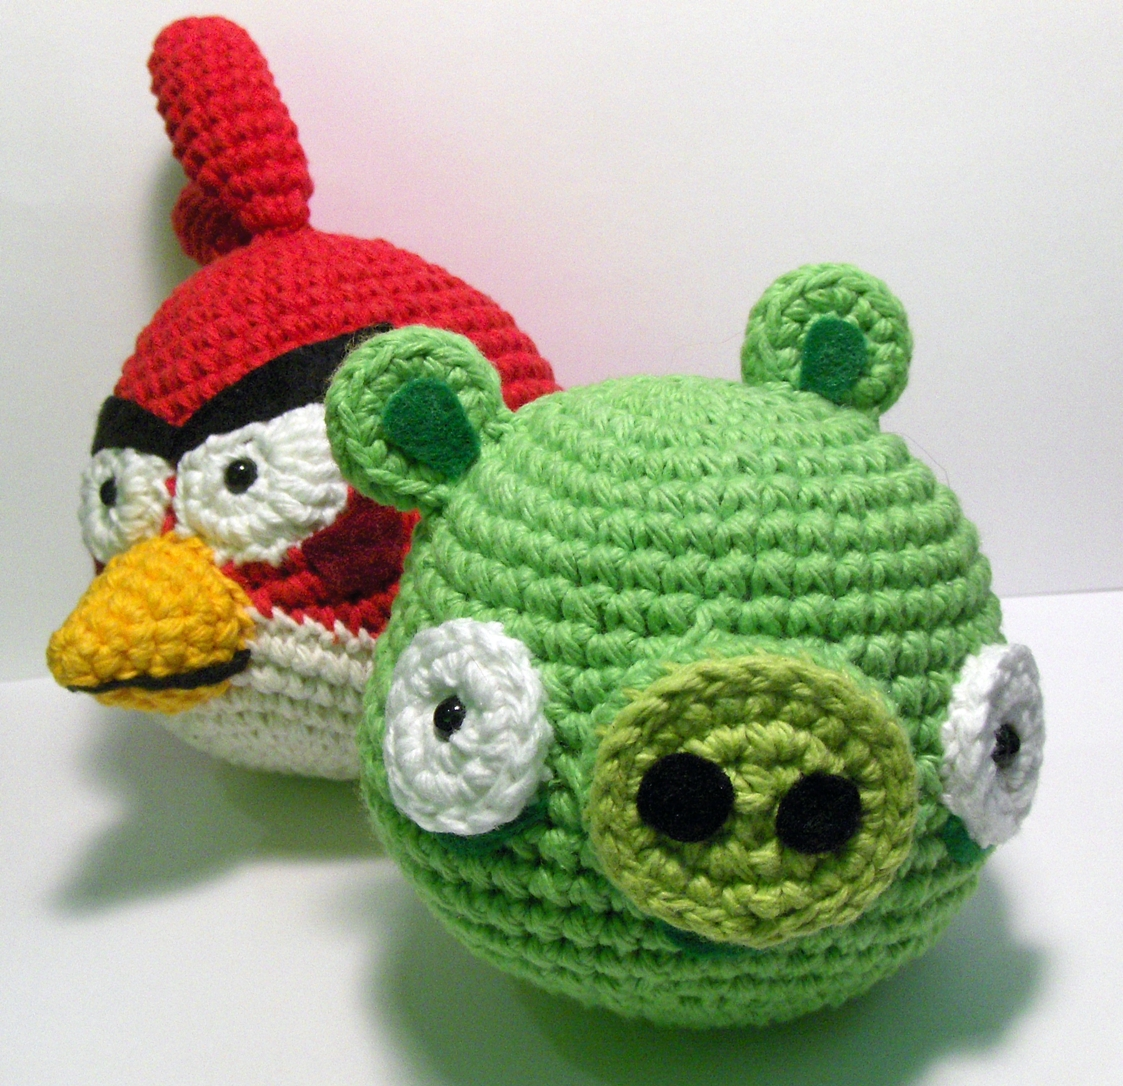 Amigurumi Crochet Patterns with love for the Nerdy ? ? Amigurumi ...